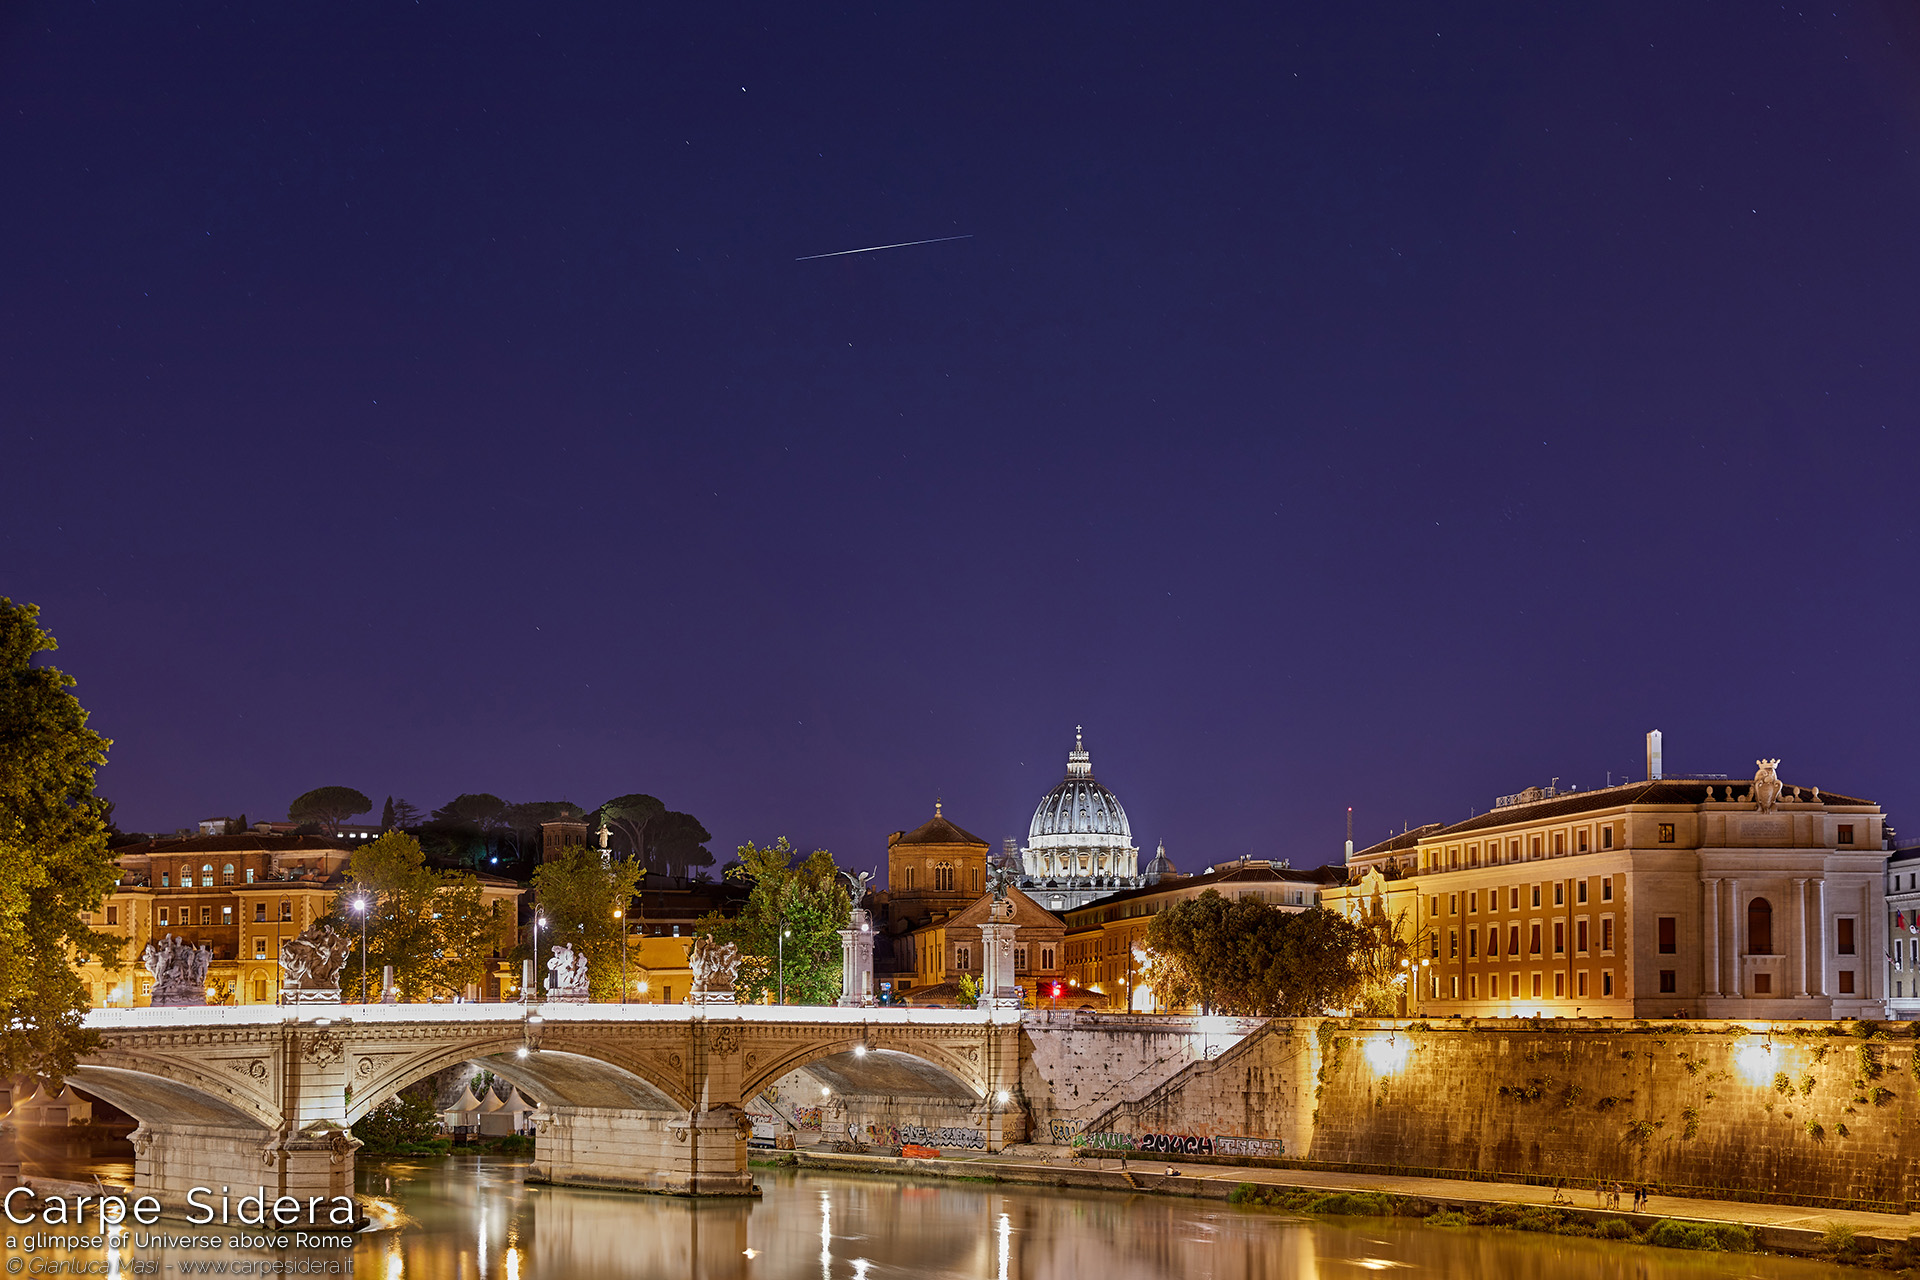 11. The Iridium 10 satellite shines above the Tiber and the dome of St. Peter's.